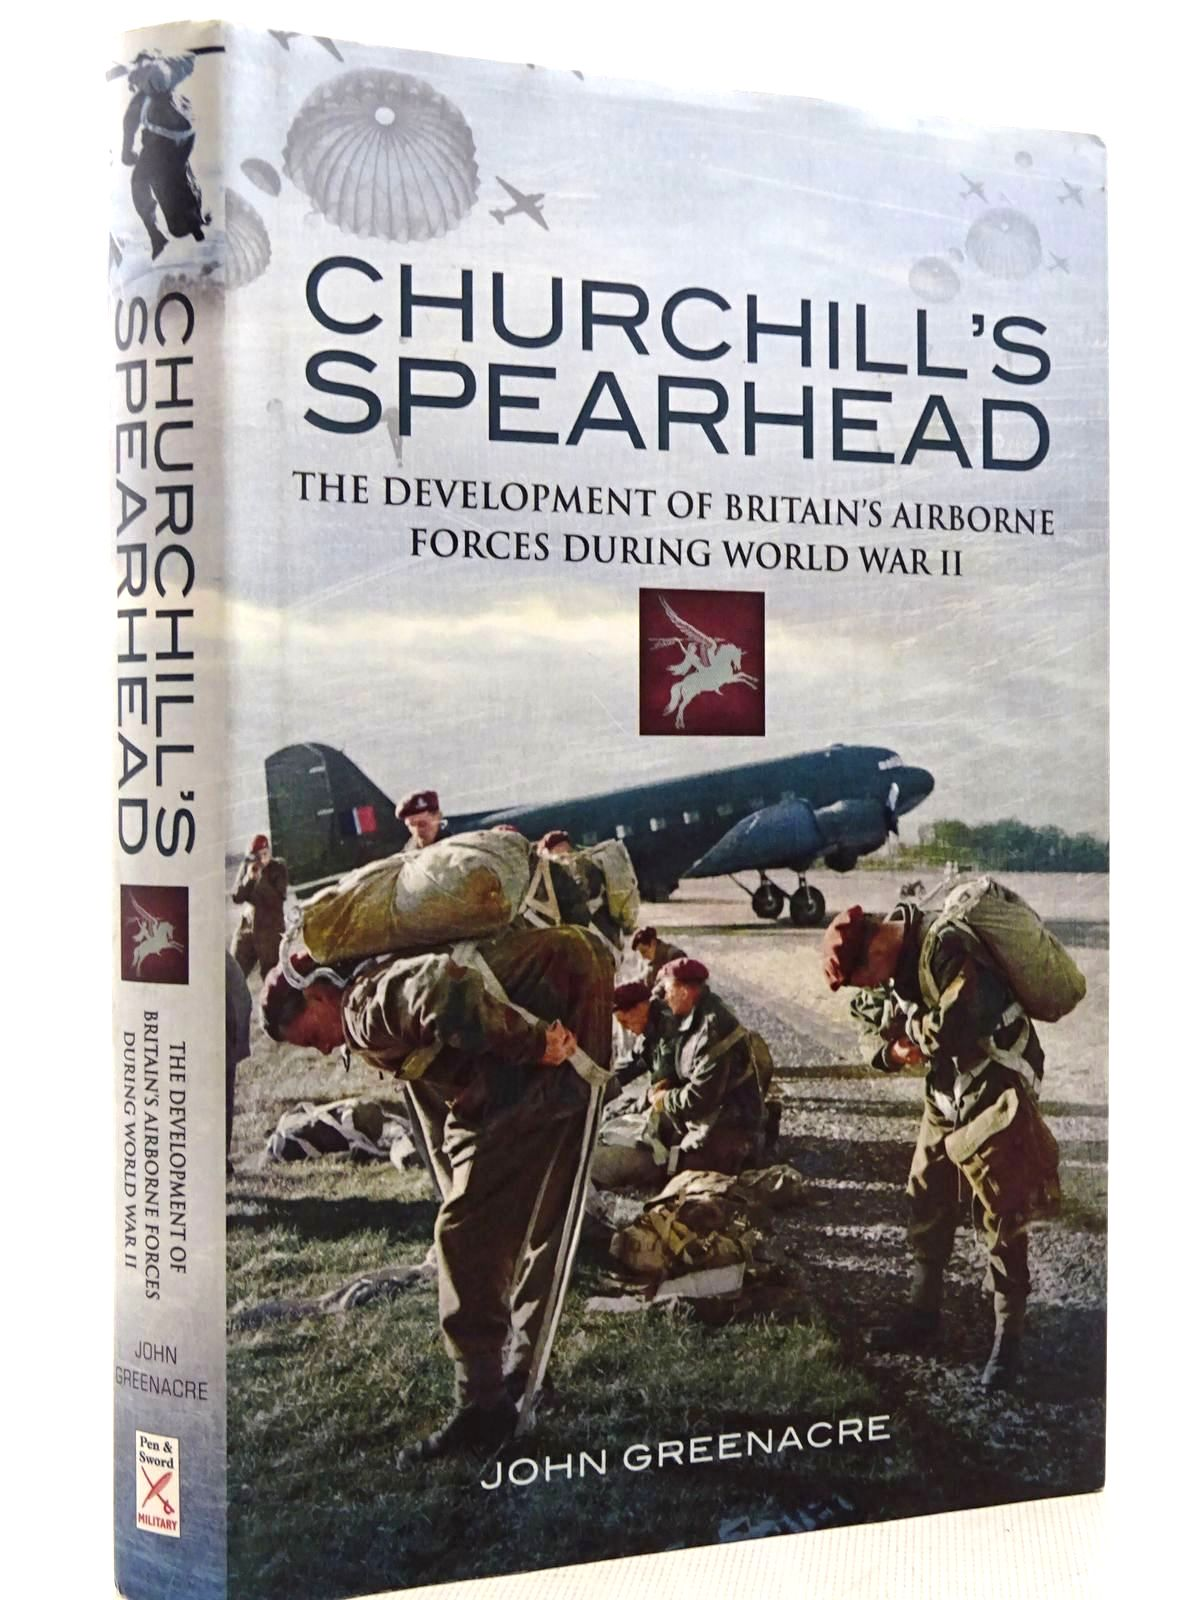 Photo of CHURCHILL'S SPEARHEAD THE DEVELOPMENT OF BRITAIN'S AIRBORNE FORCES DURING THE SECOND WORLD WAR written by Greenacre, John William published by Pen & Sword Aviation (STOCK CODE: 2128908)  for sale by Stella & Rose's Books